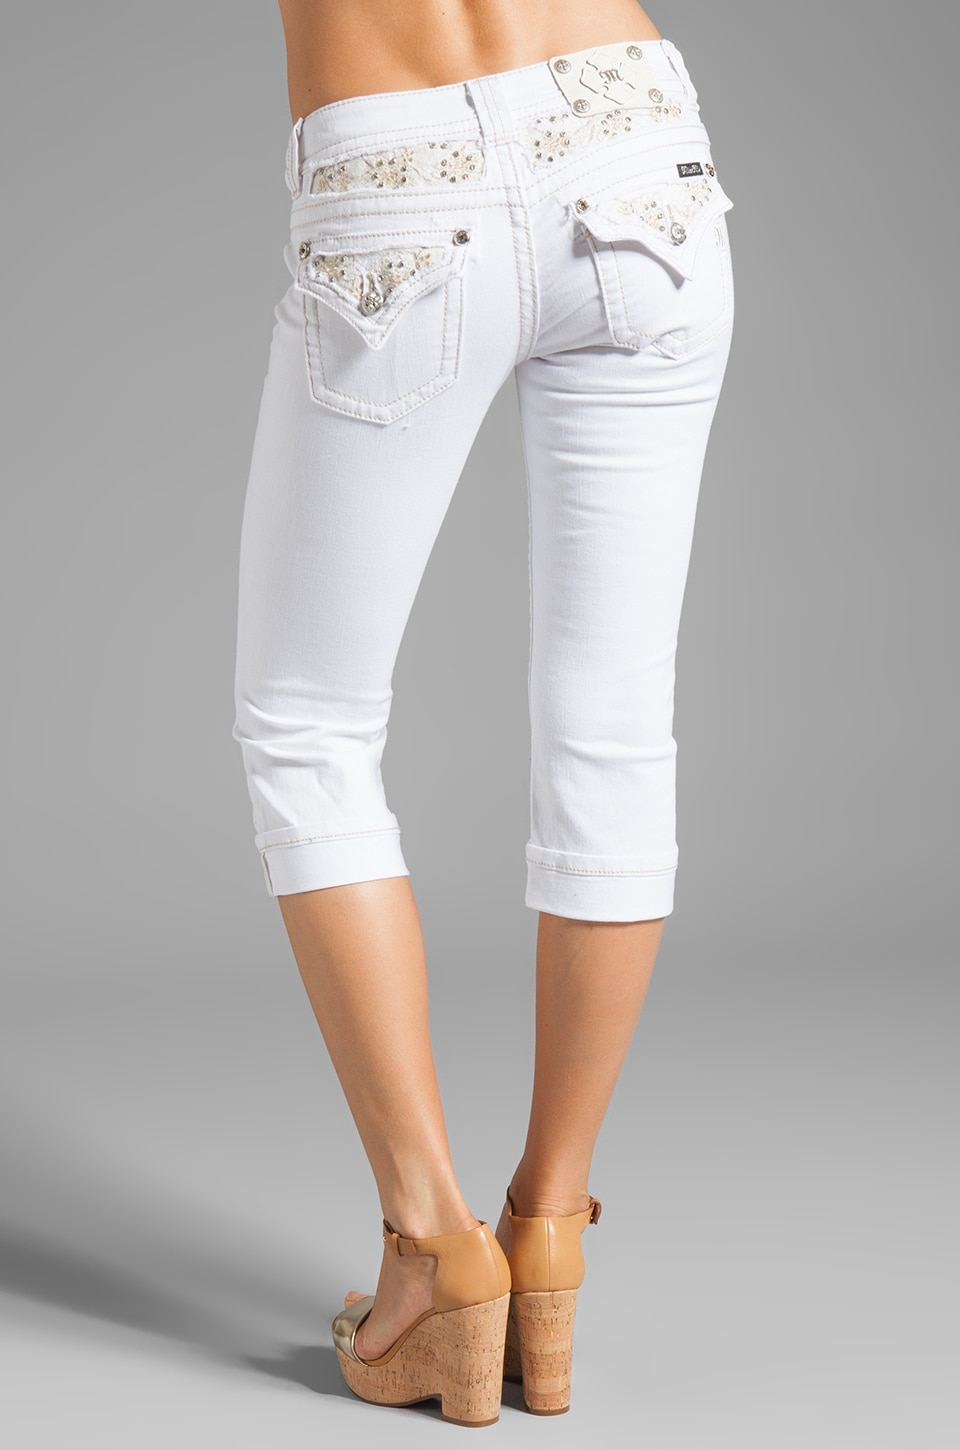 White Denim Capris